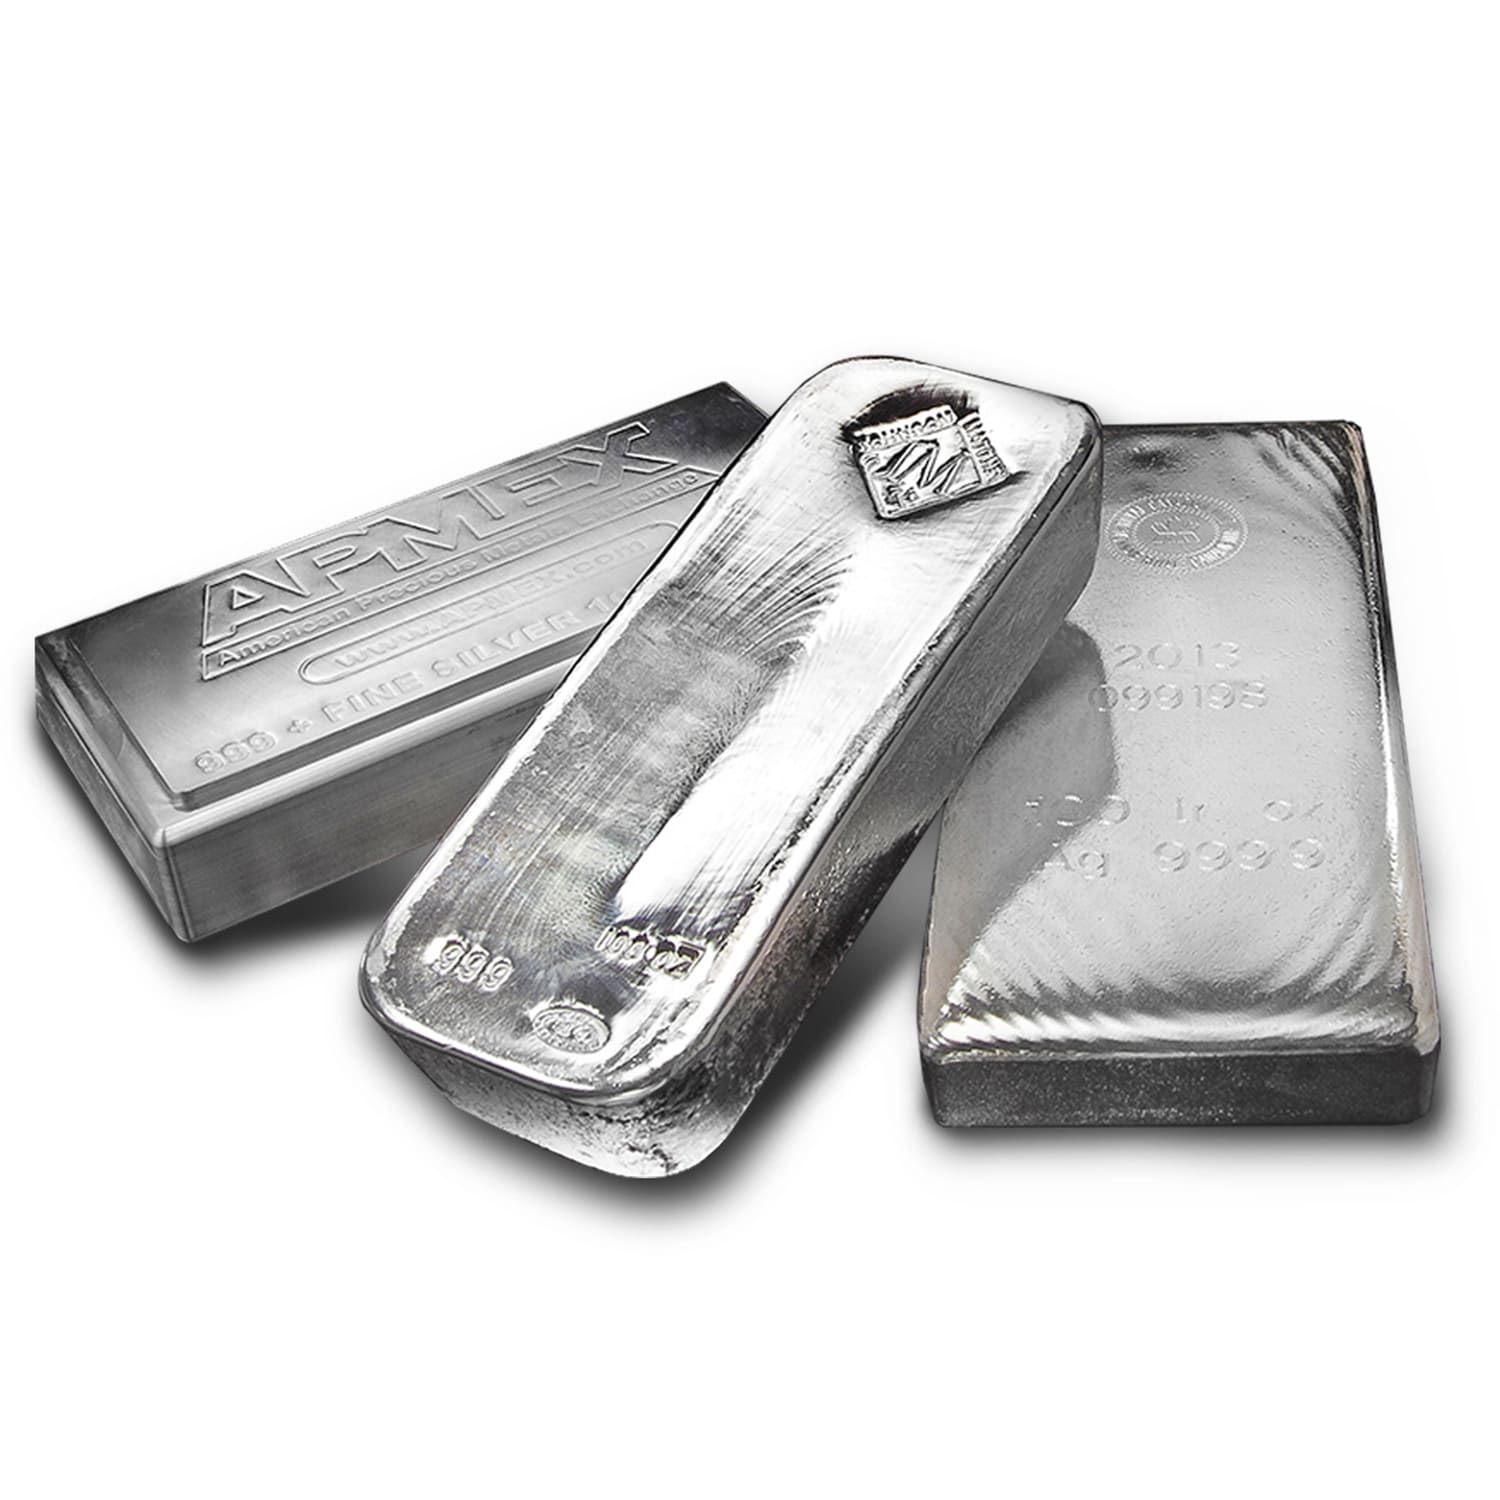 100.37 oz Silver Bars - Secondary Market